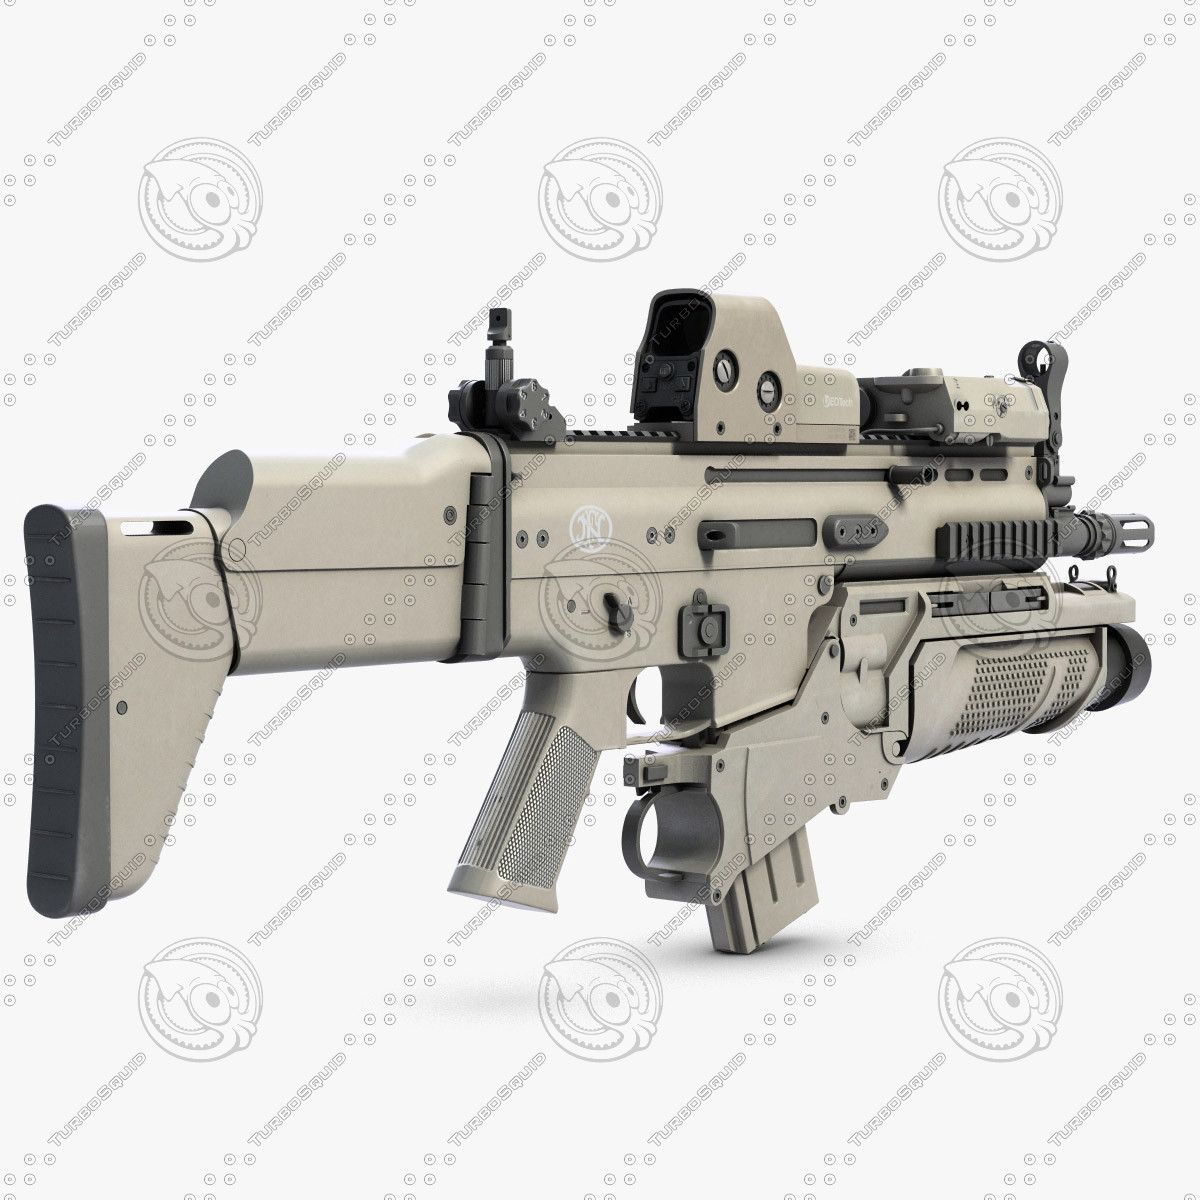 3ds combat assault rifle fn scar | army | Fn scar, Guns